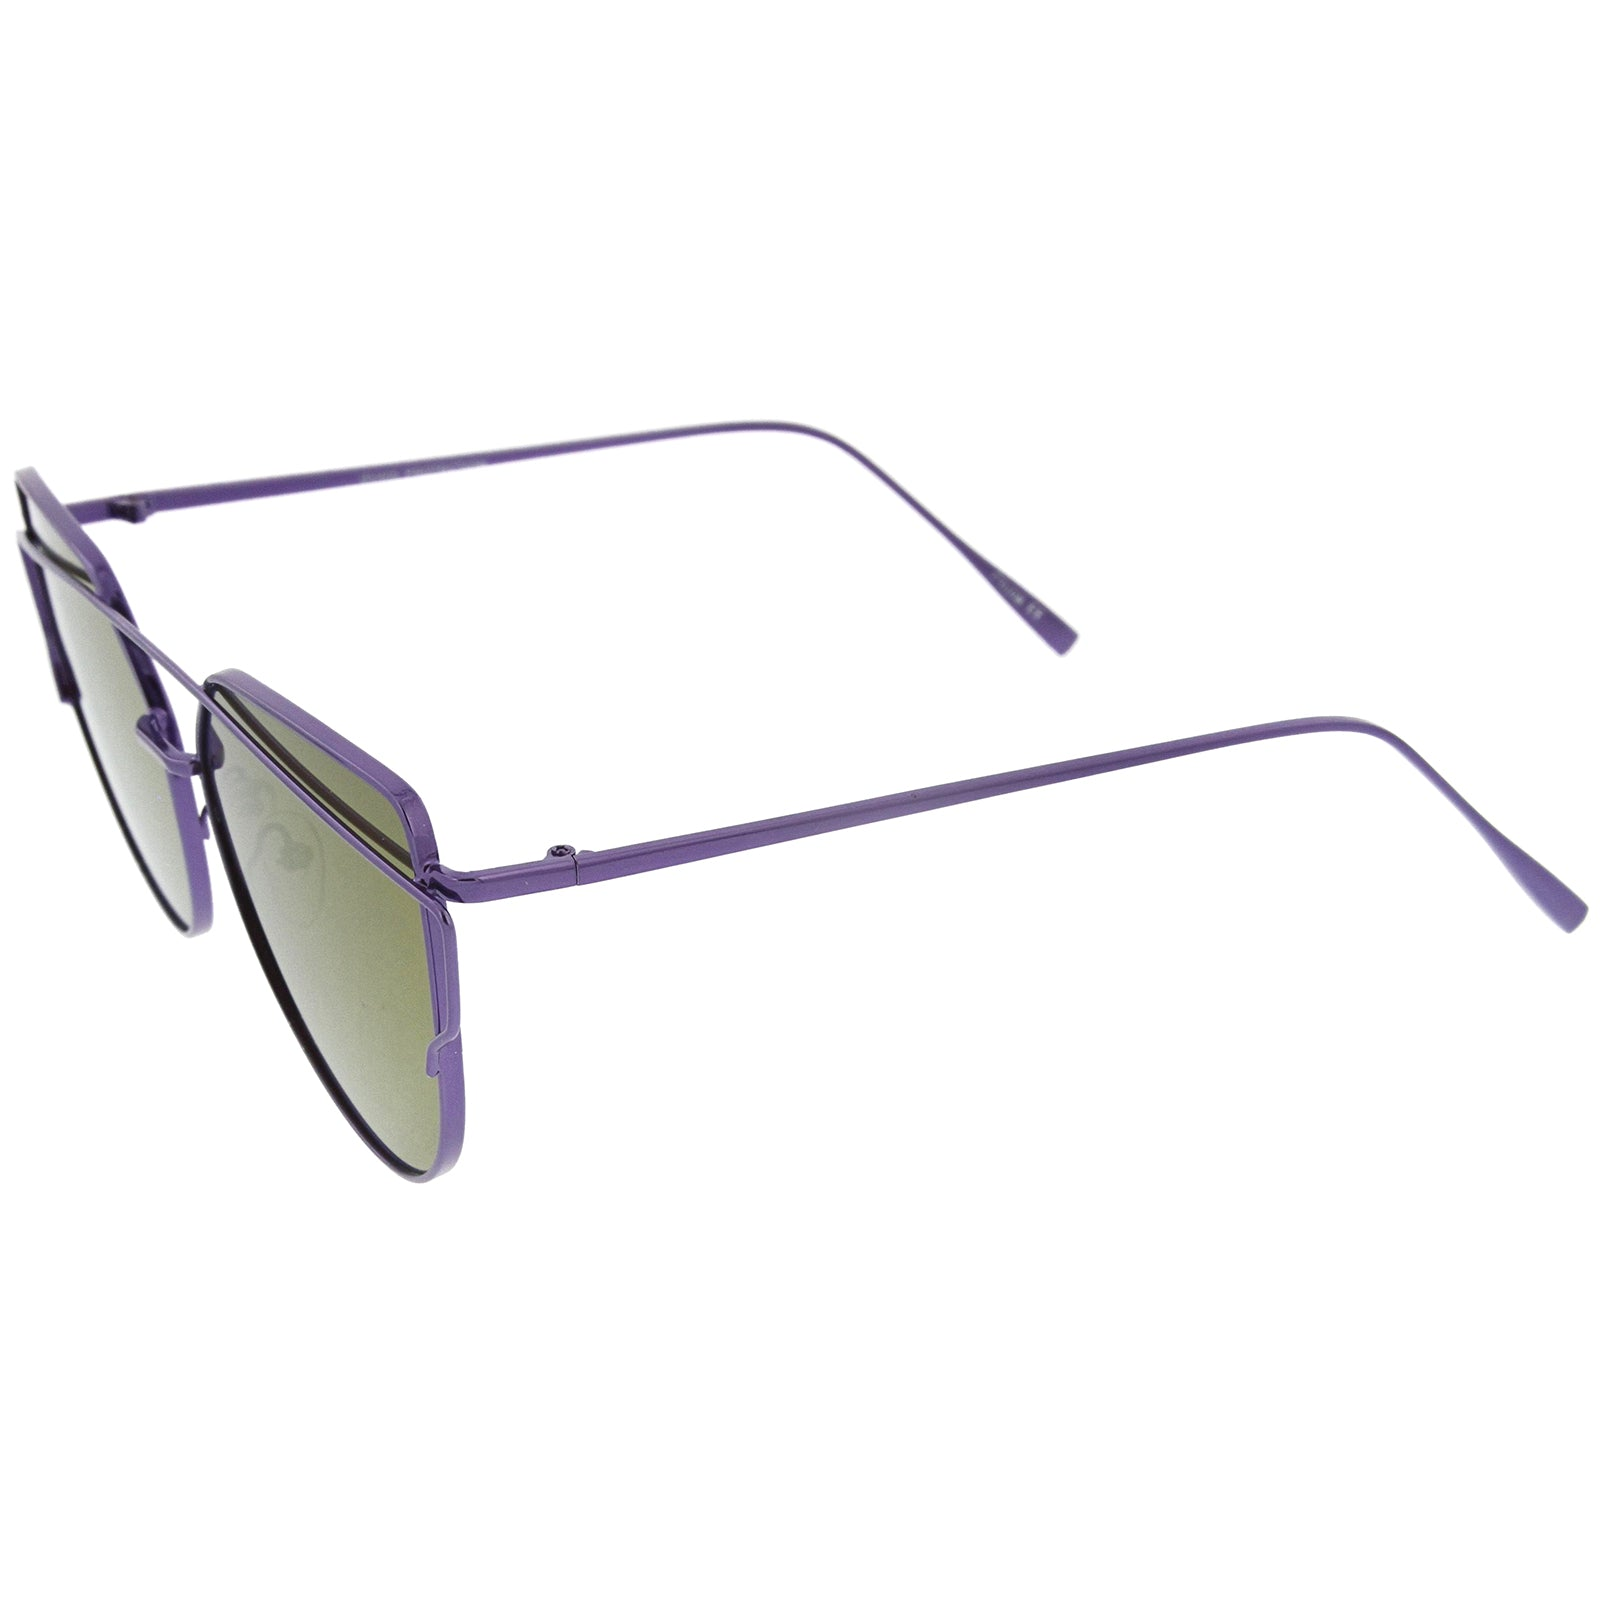 Oversize Metal Frame Thin Temple Color Mirror Flat Lens Aviator Sunglasses 62mm - sunglass.la - 15